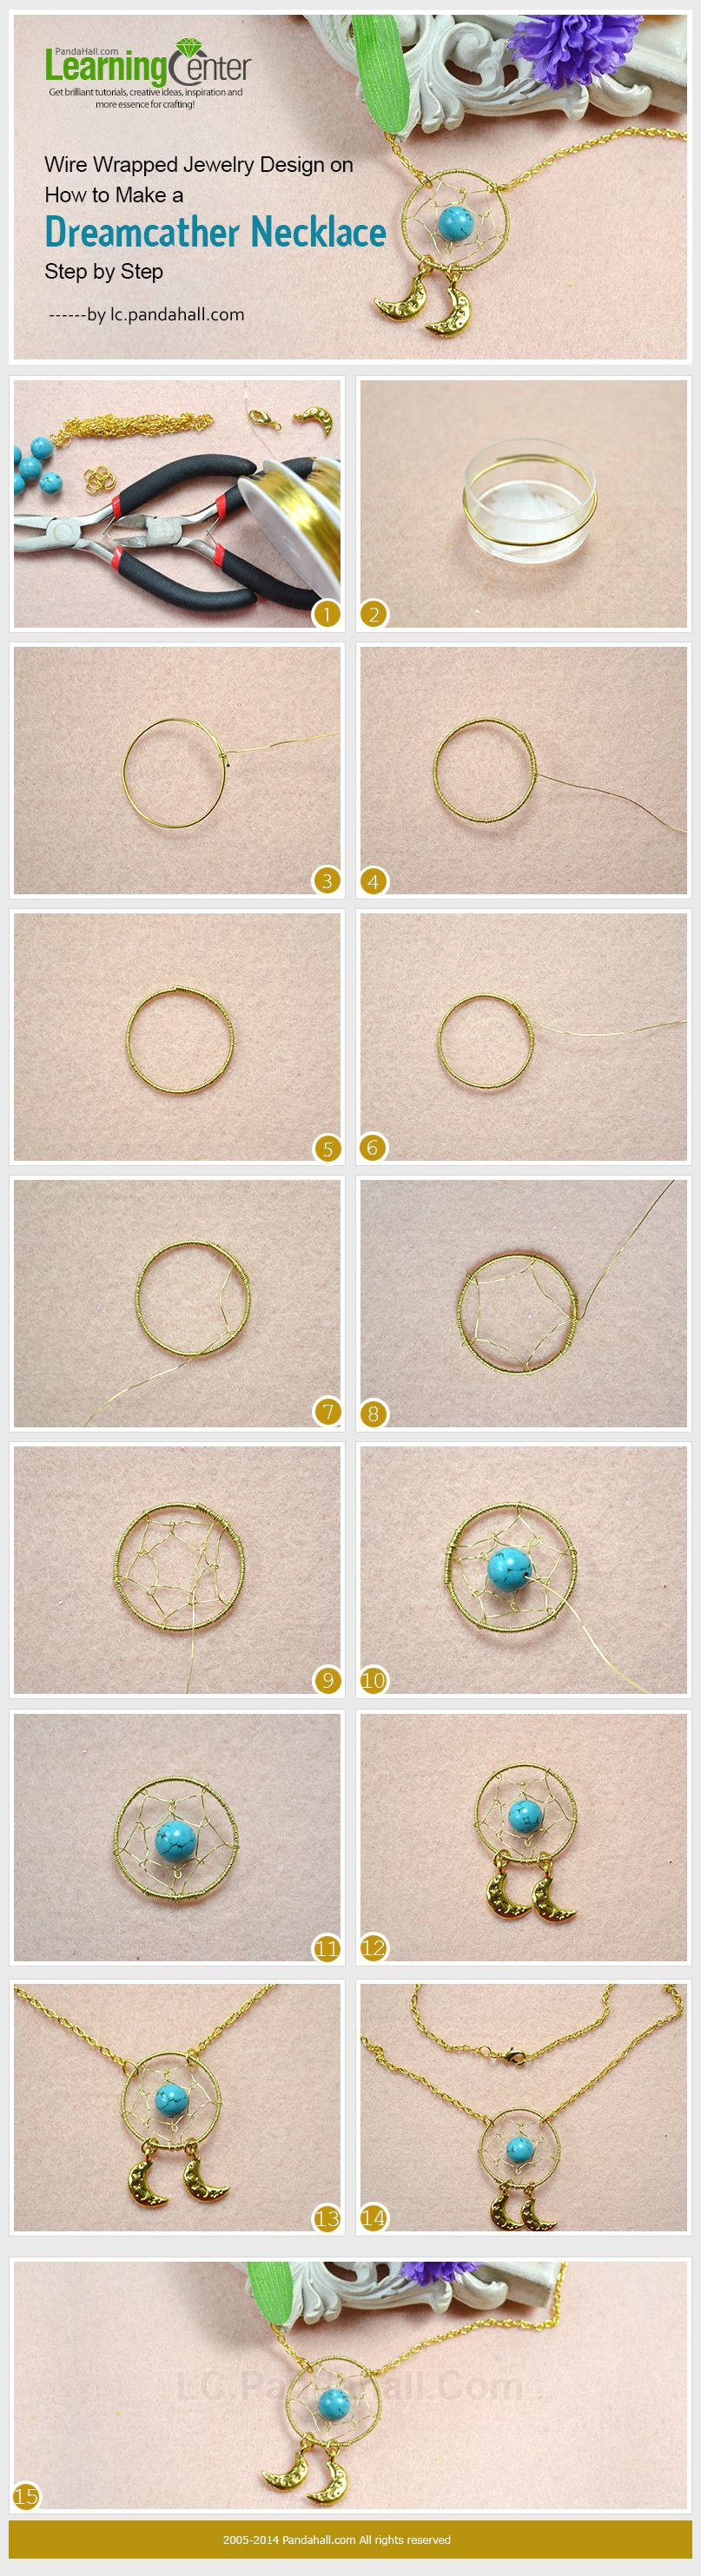 Wire Wrapped Jewelry Design on How to Make a Dreamcather Necklace with Turquoise Step by Step